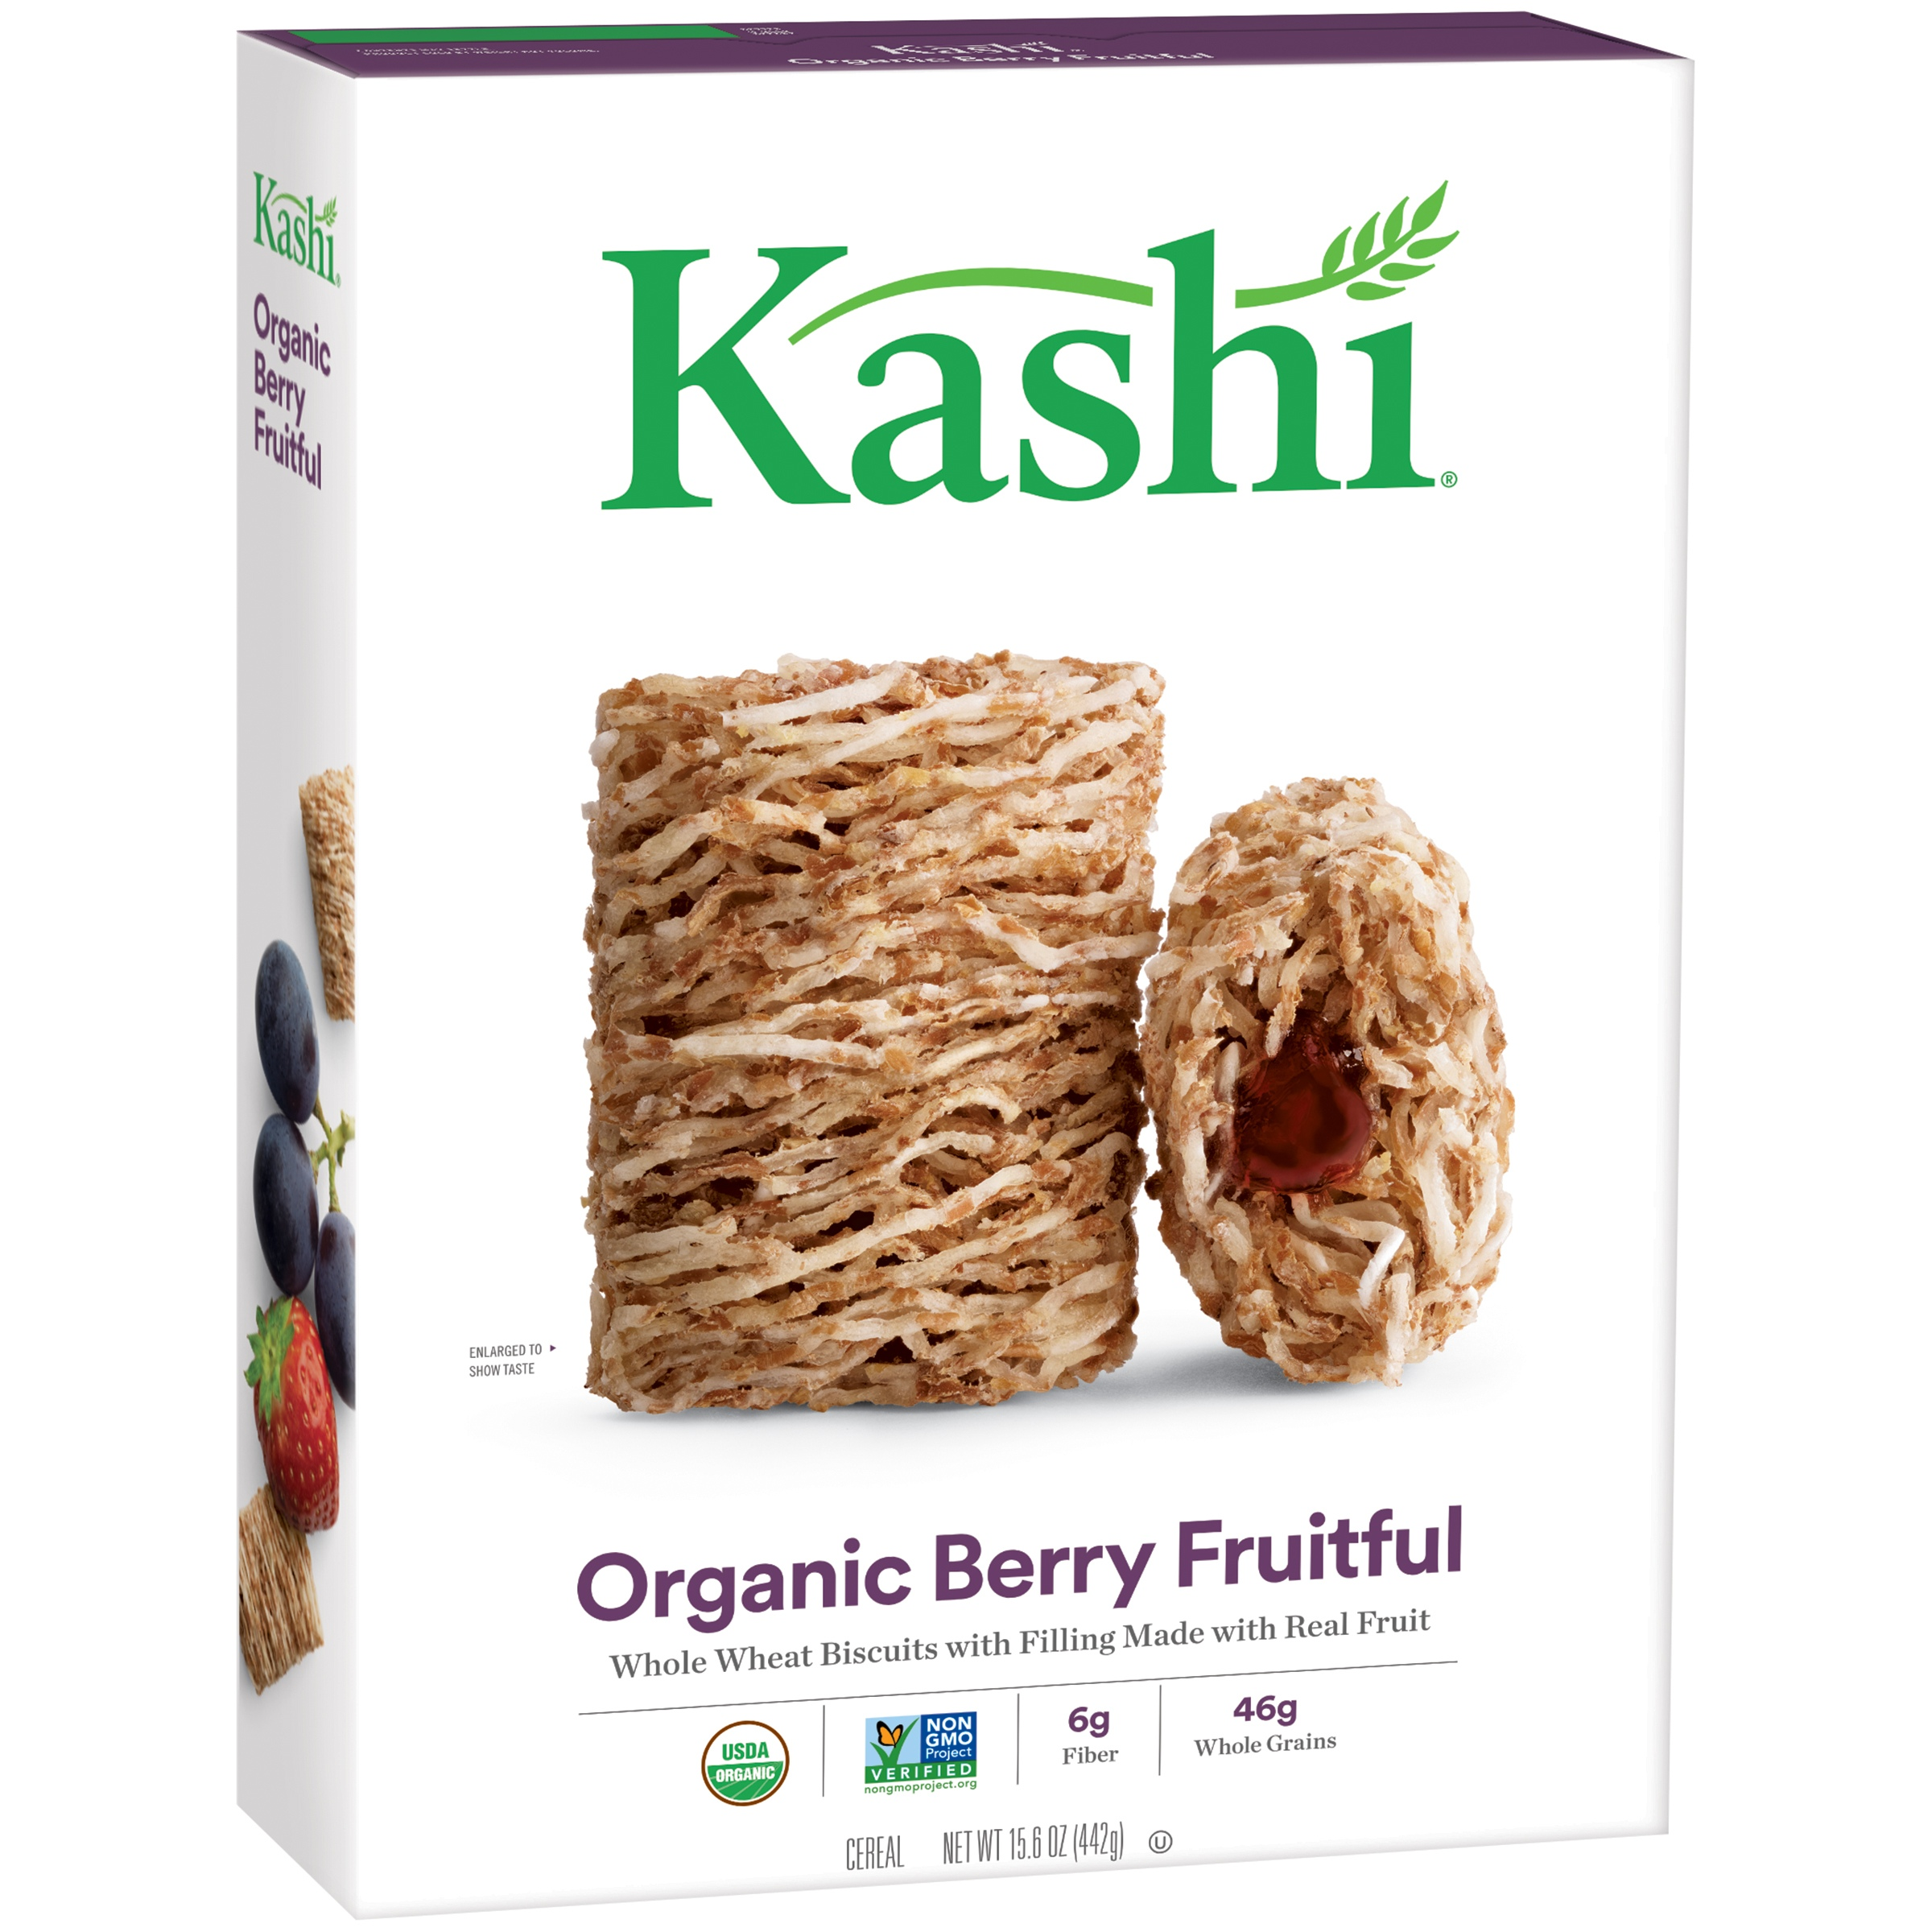 Kashi Organic Promise Cereal, Berry Fruitful Whole Wheat Biscuits, 15.6 Ounce